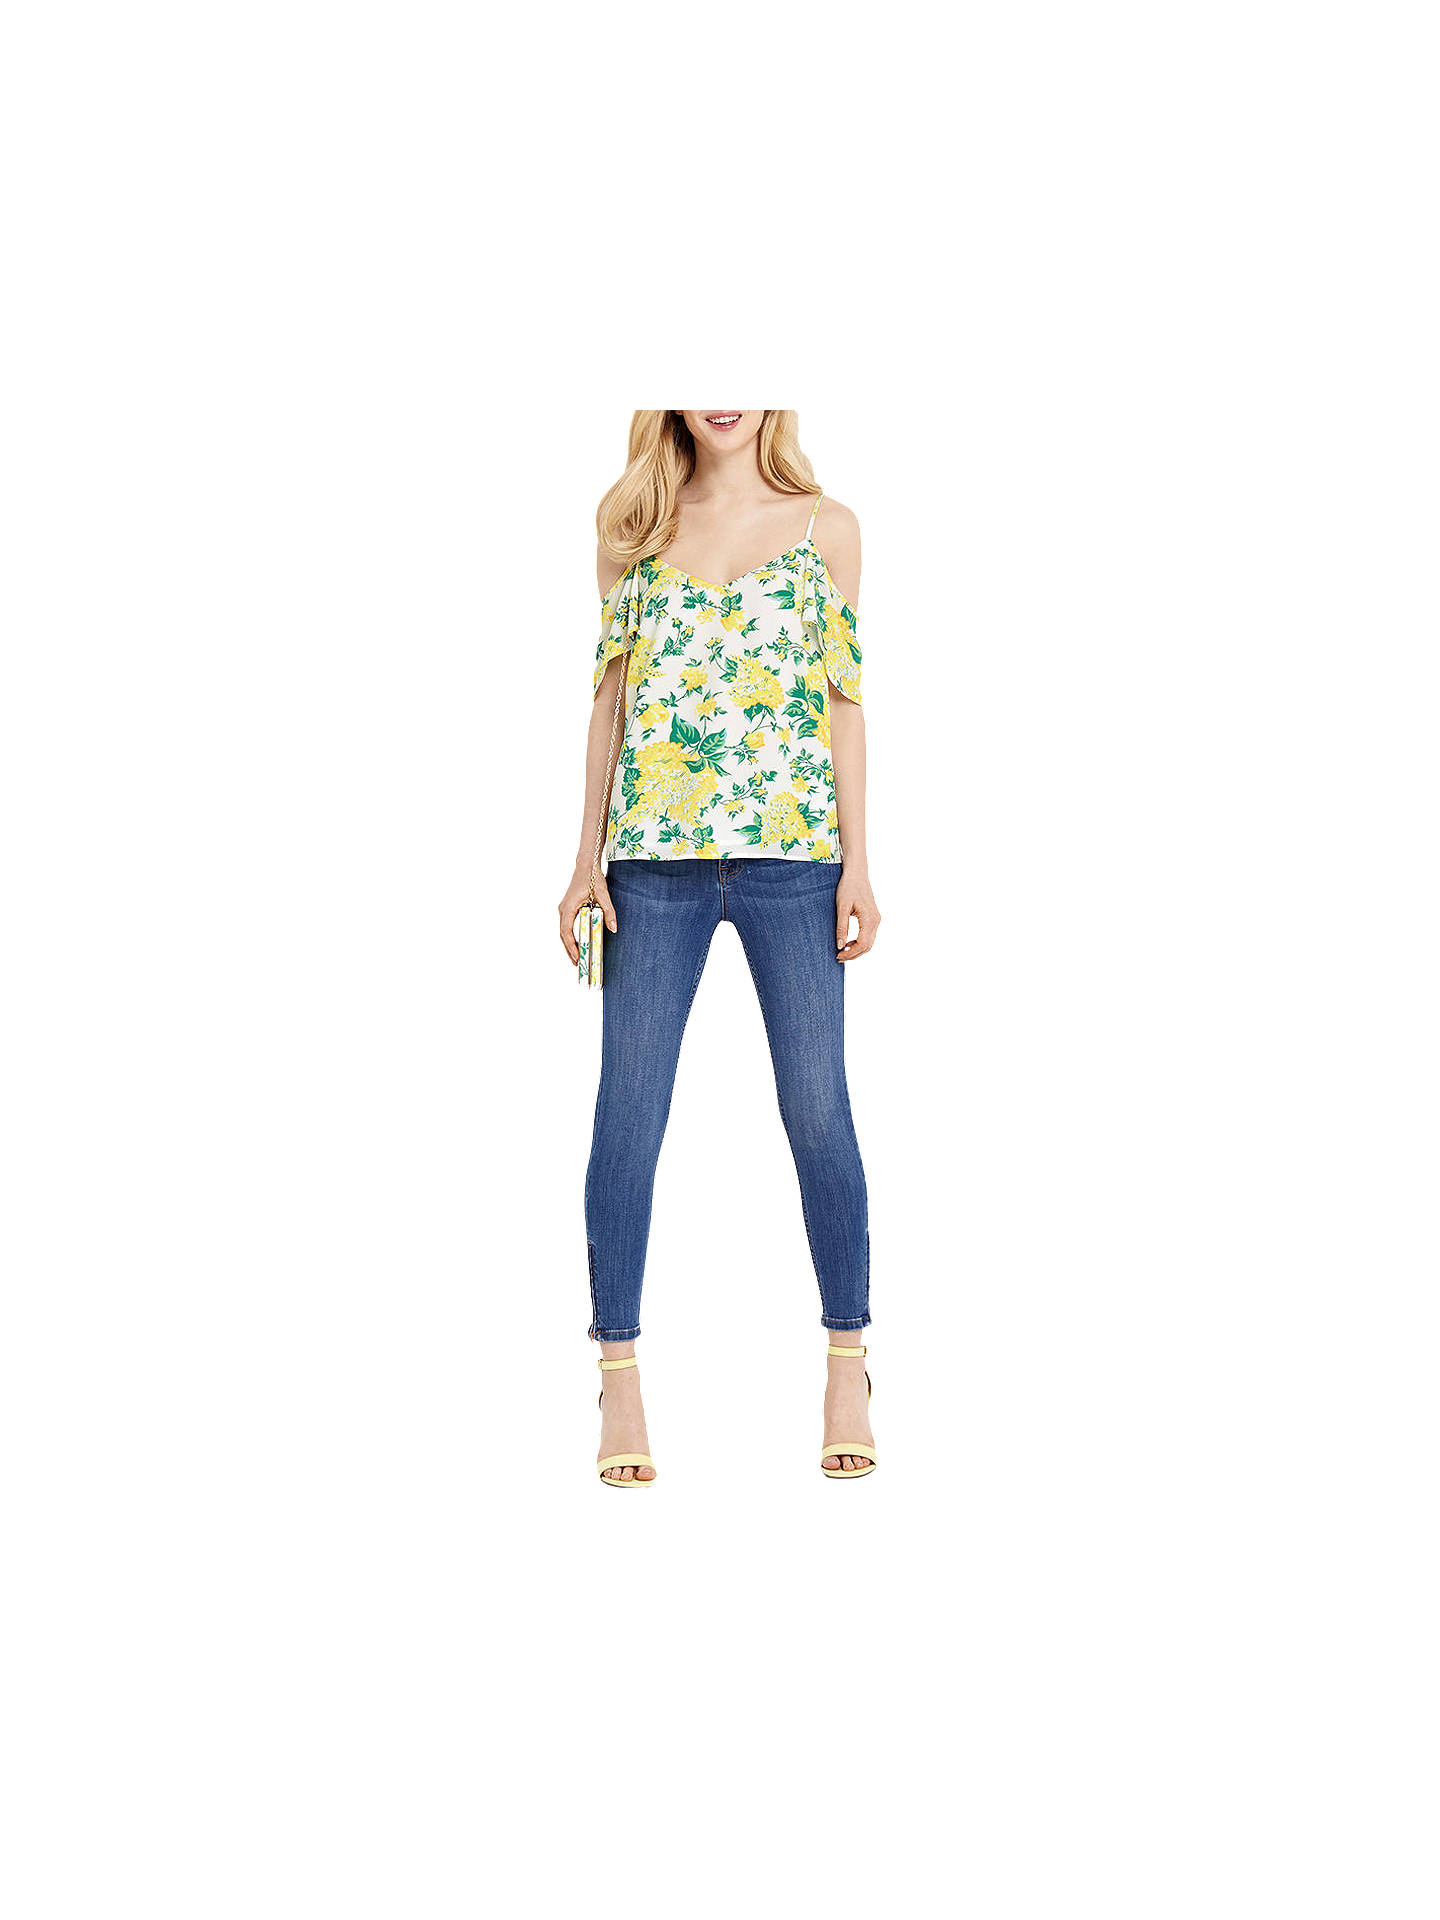 BuyOasis Blossom Print Cold Shoulder Cami, Natural/Multi, 8 Online at johnlewis.com